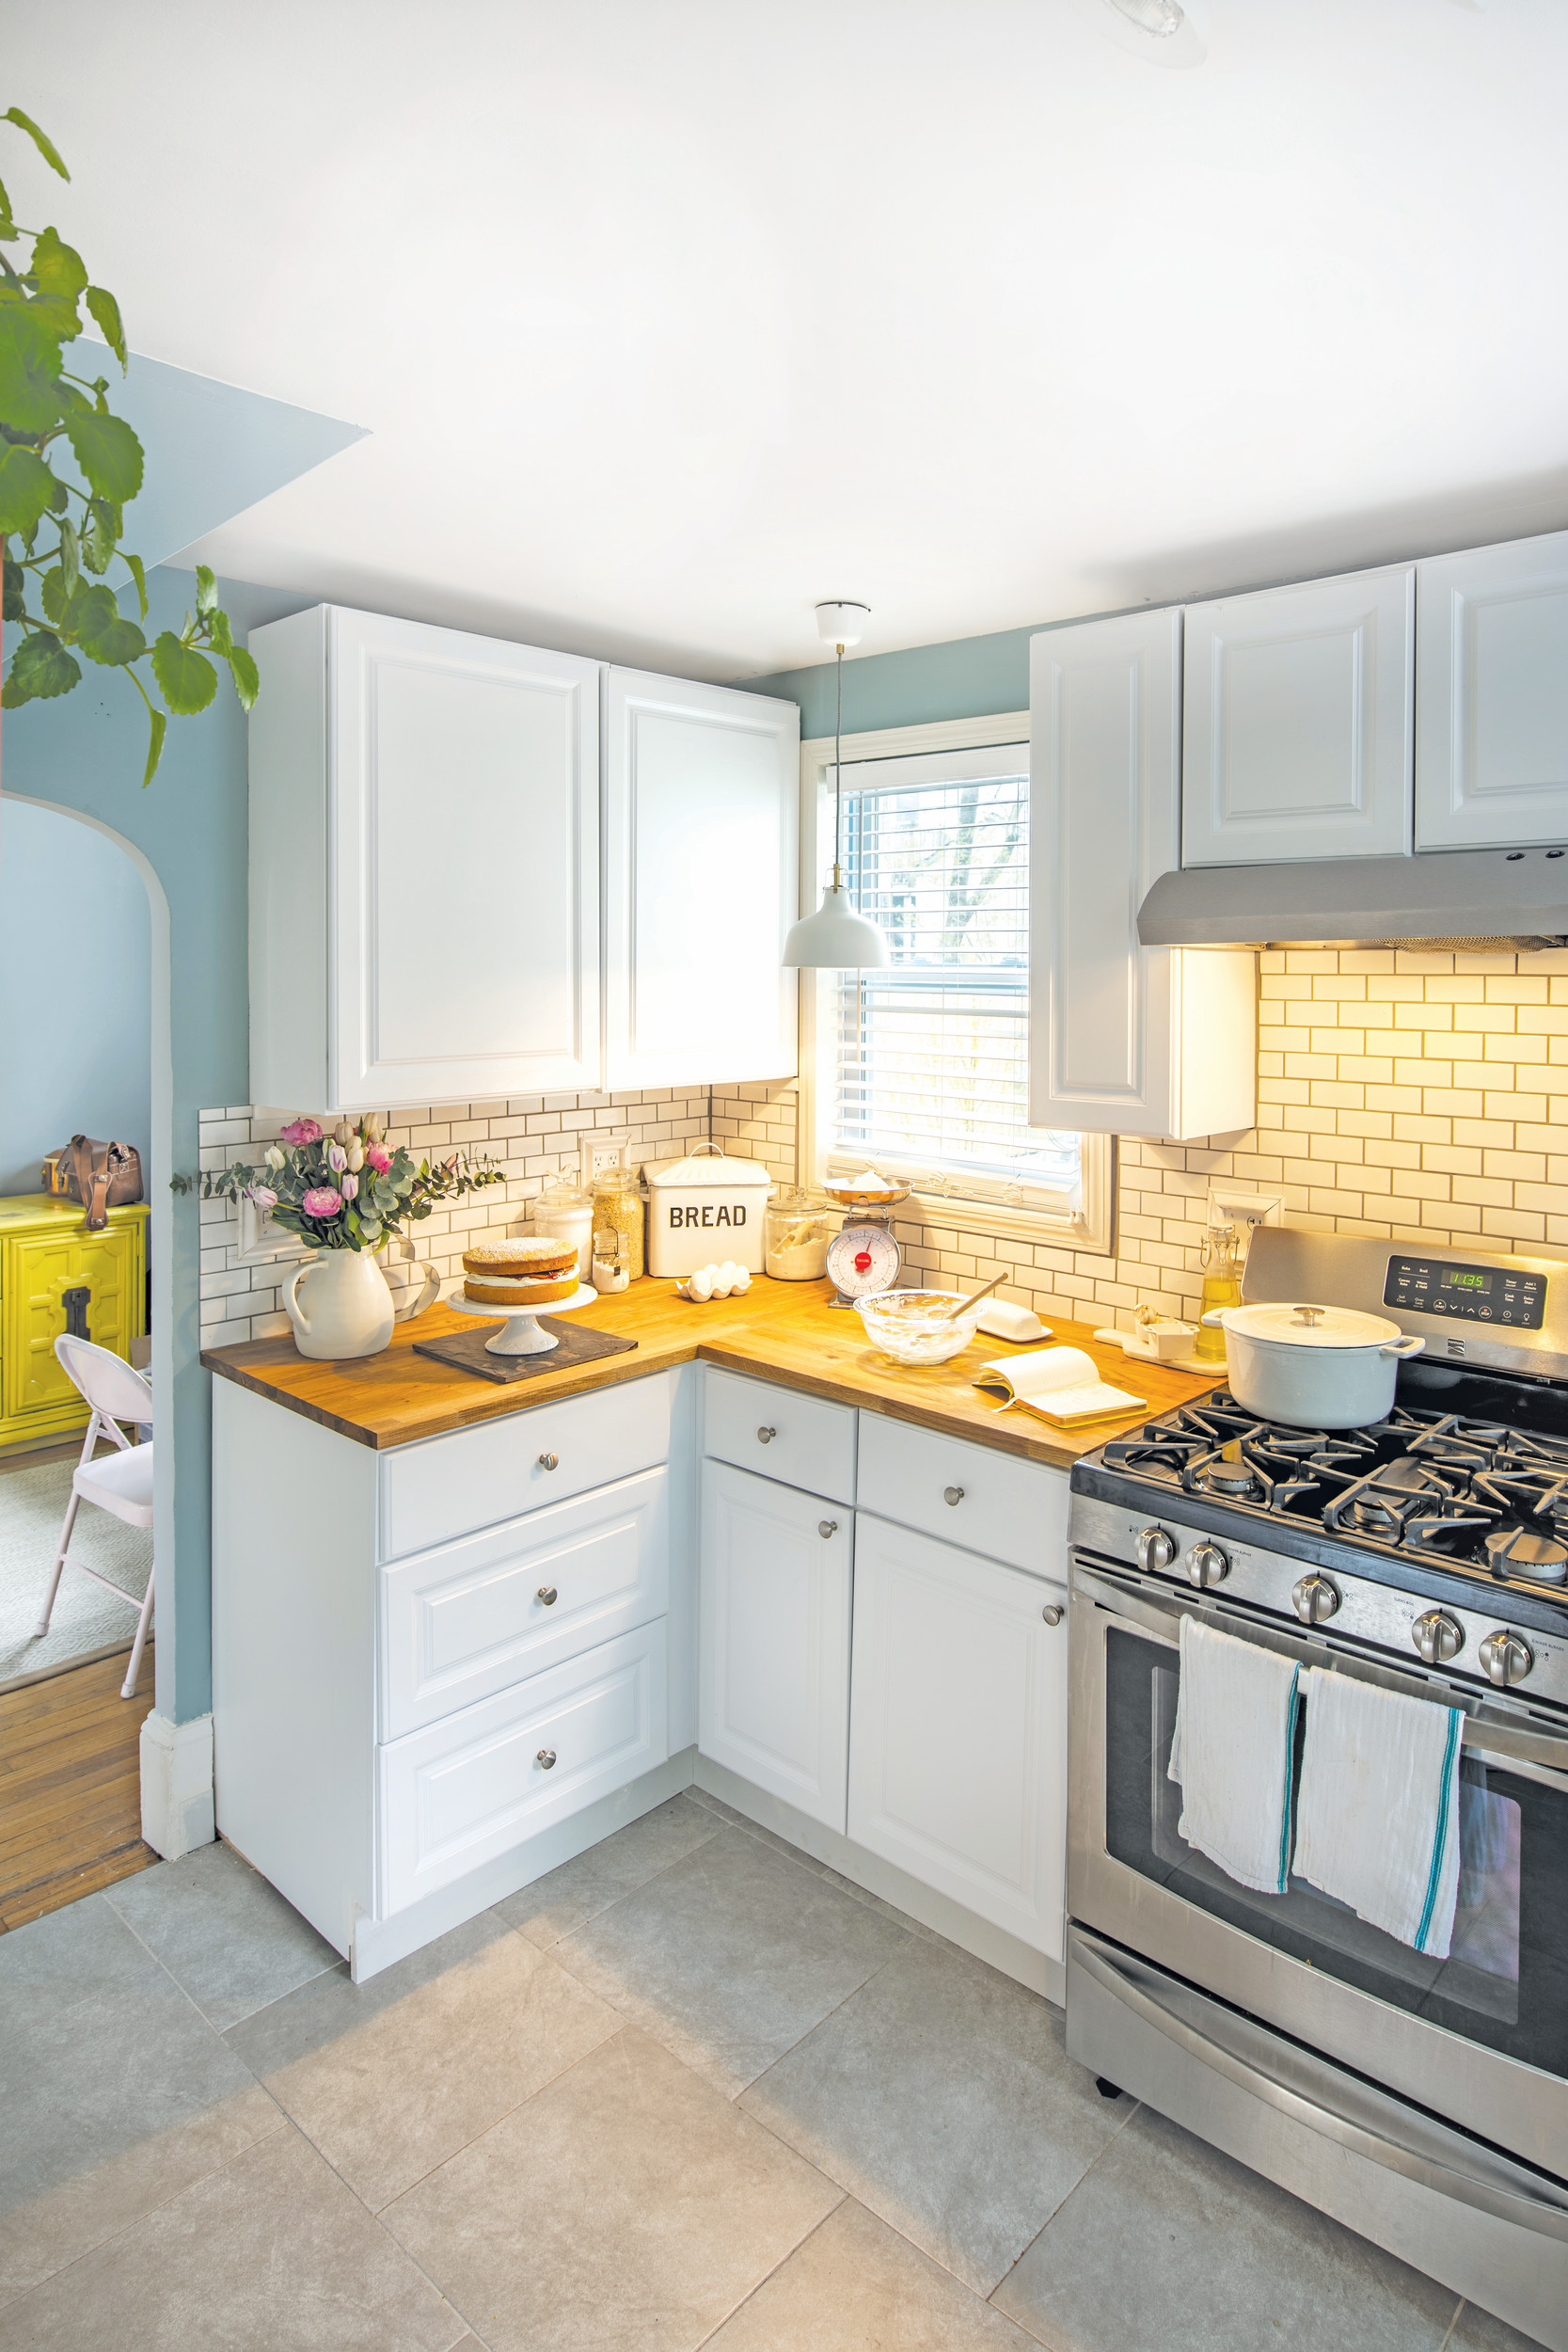 Lifestyle blogger Holly Vine has incorporated practicality and decorating touches from her native England to create an ideal space for experimenting with recipes in her Providence home